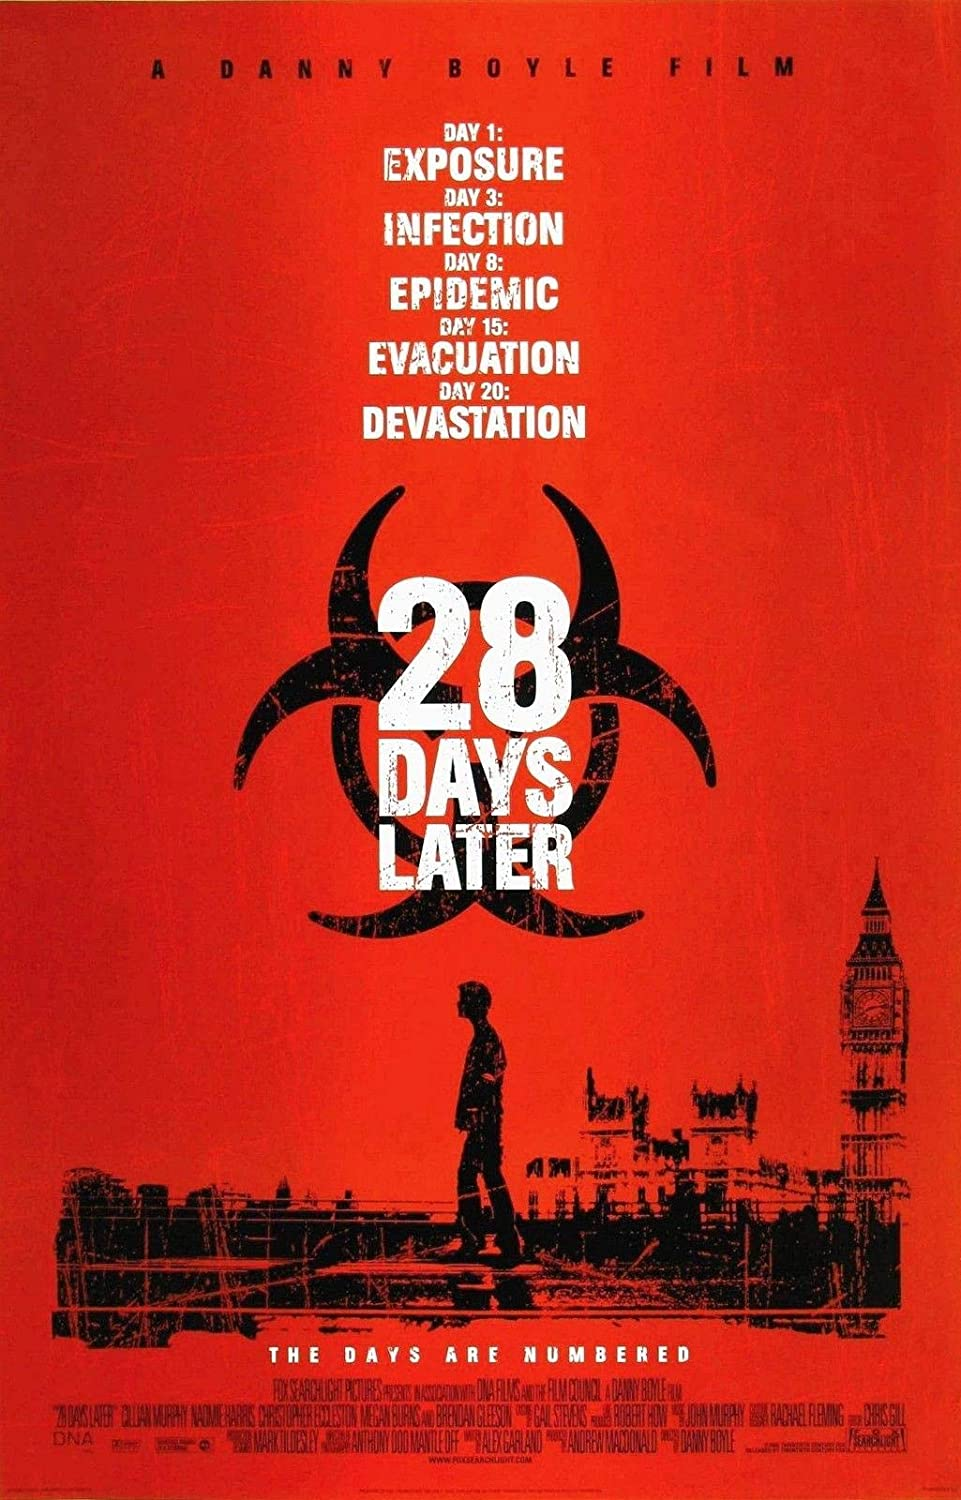 72269 28 Days Later Movie Horror Zombie Decor Wall 36x24 Poster Print